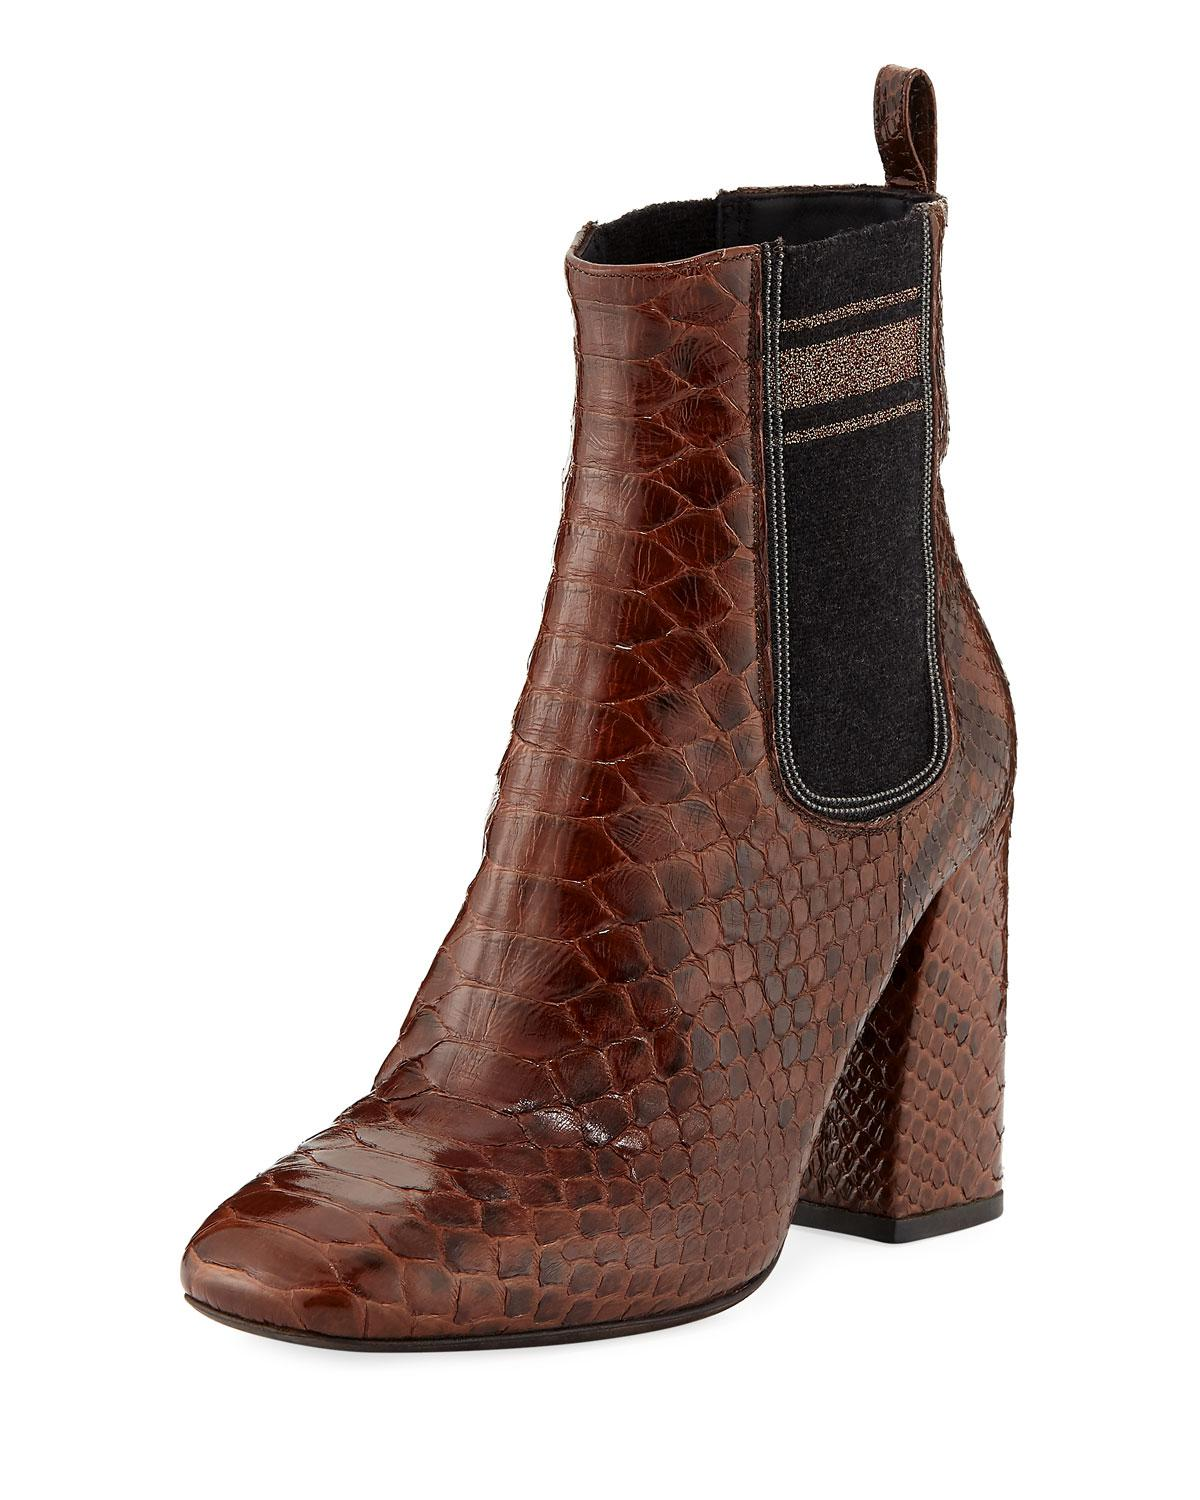 a9bb85d0795 Lyst - Brunello Cucinelli 100mm Python Chelsea Booties in Brown ...